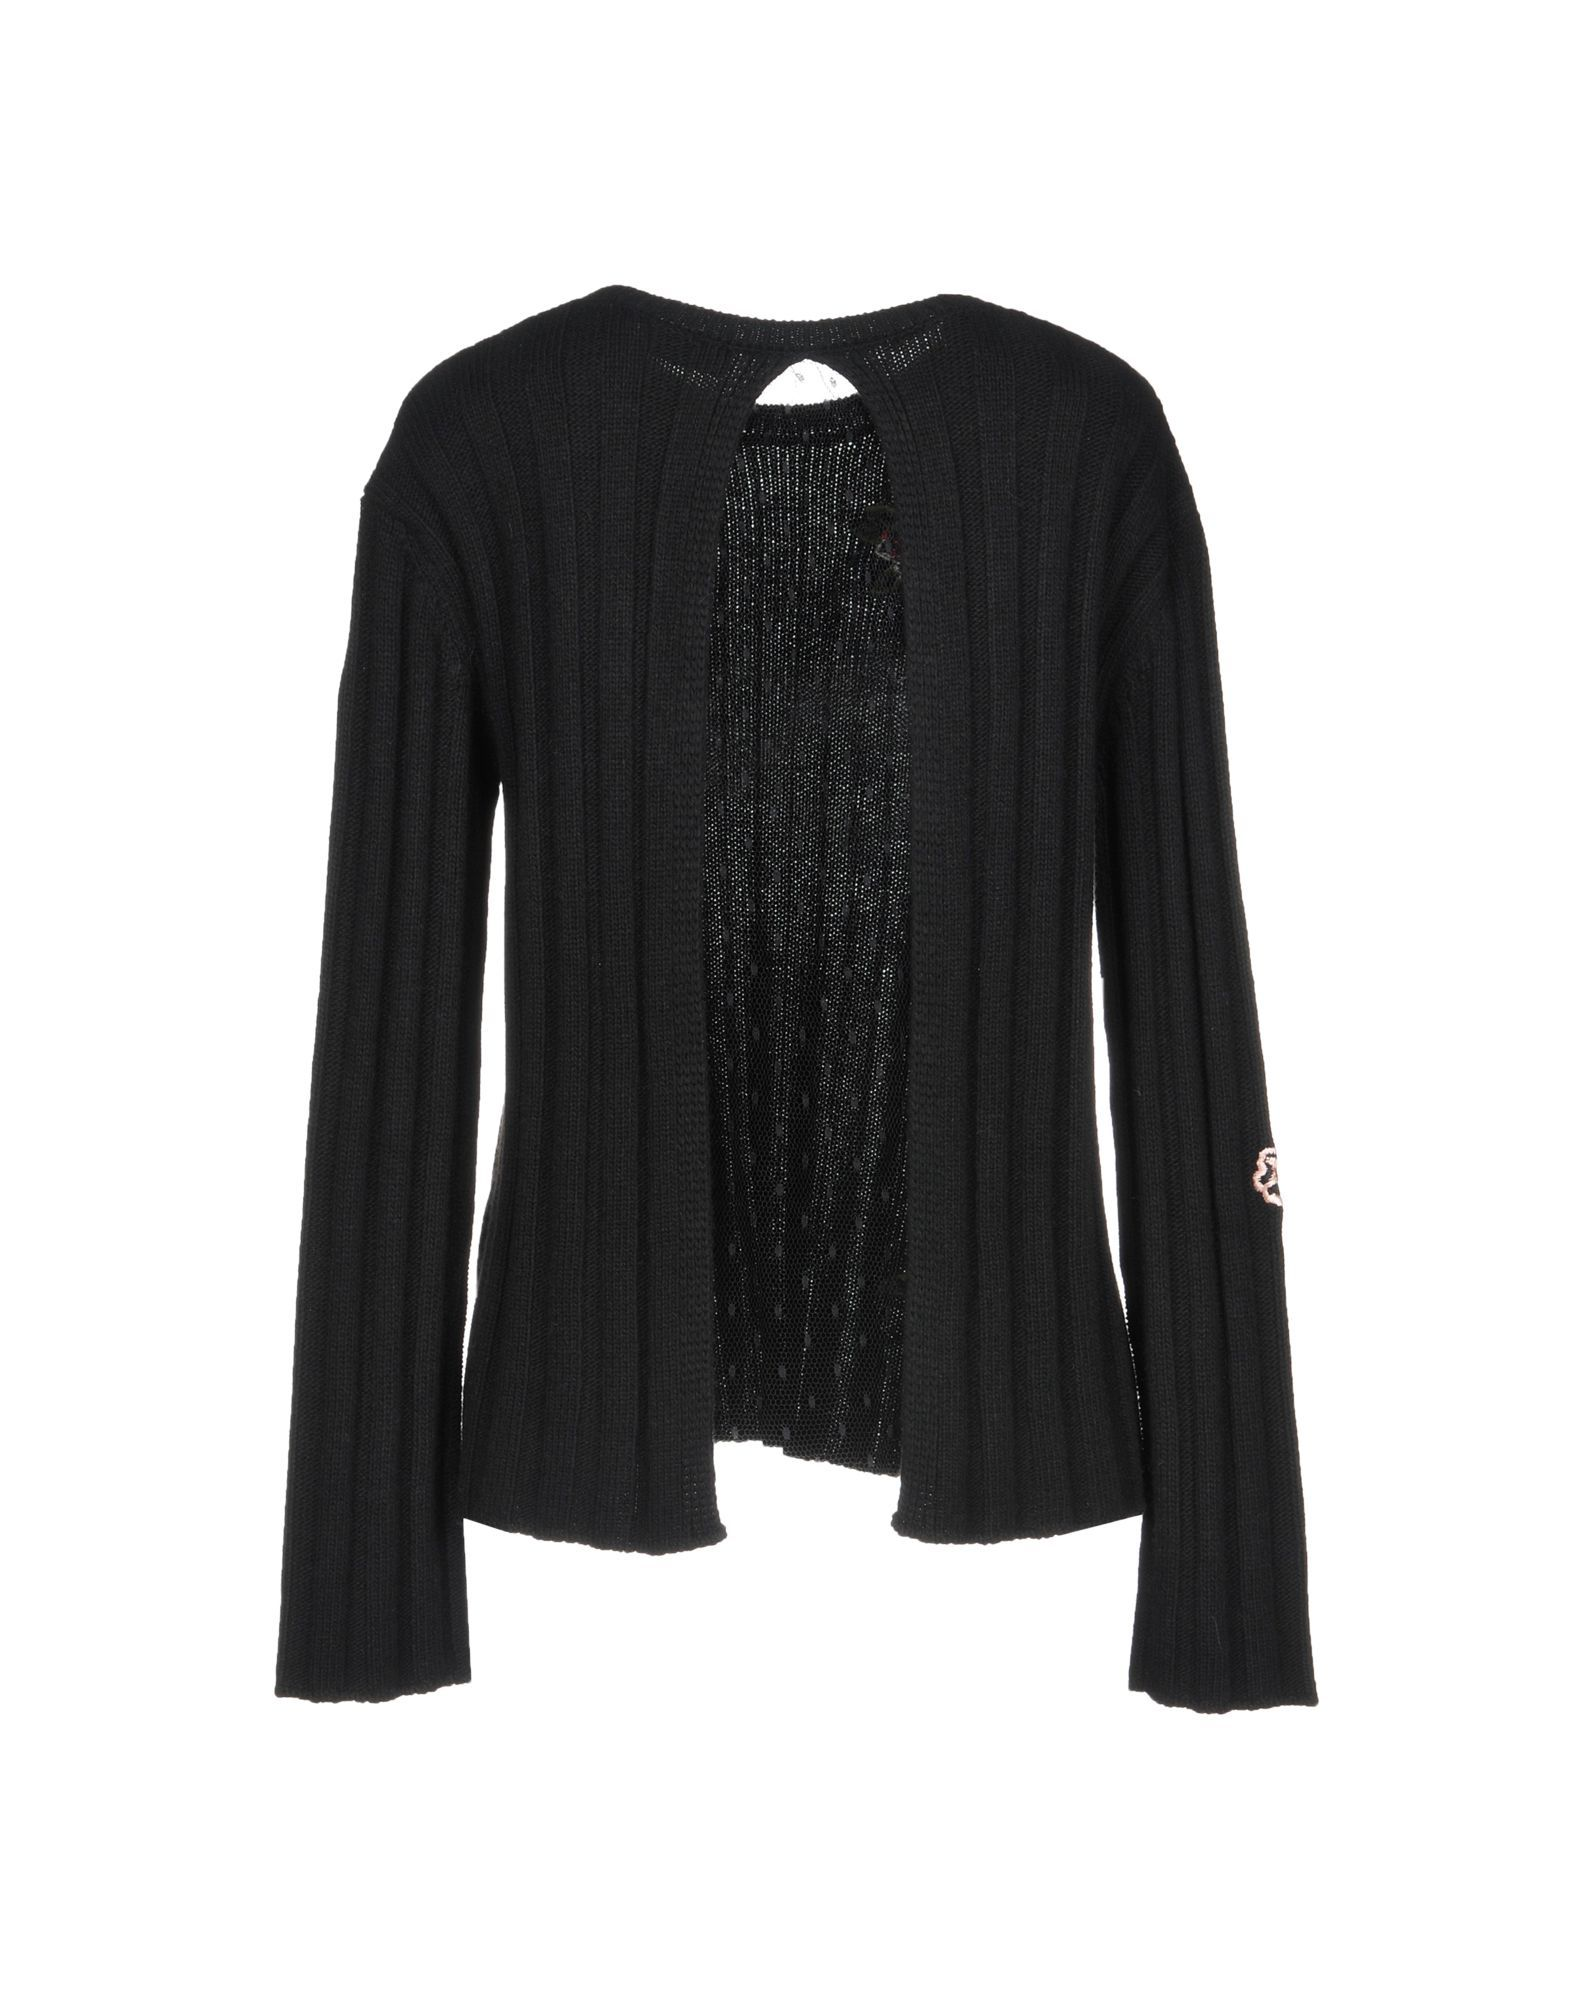 Redvalentino Black Wool Embroidered Cardigan